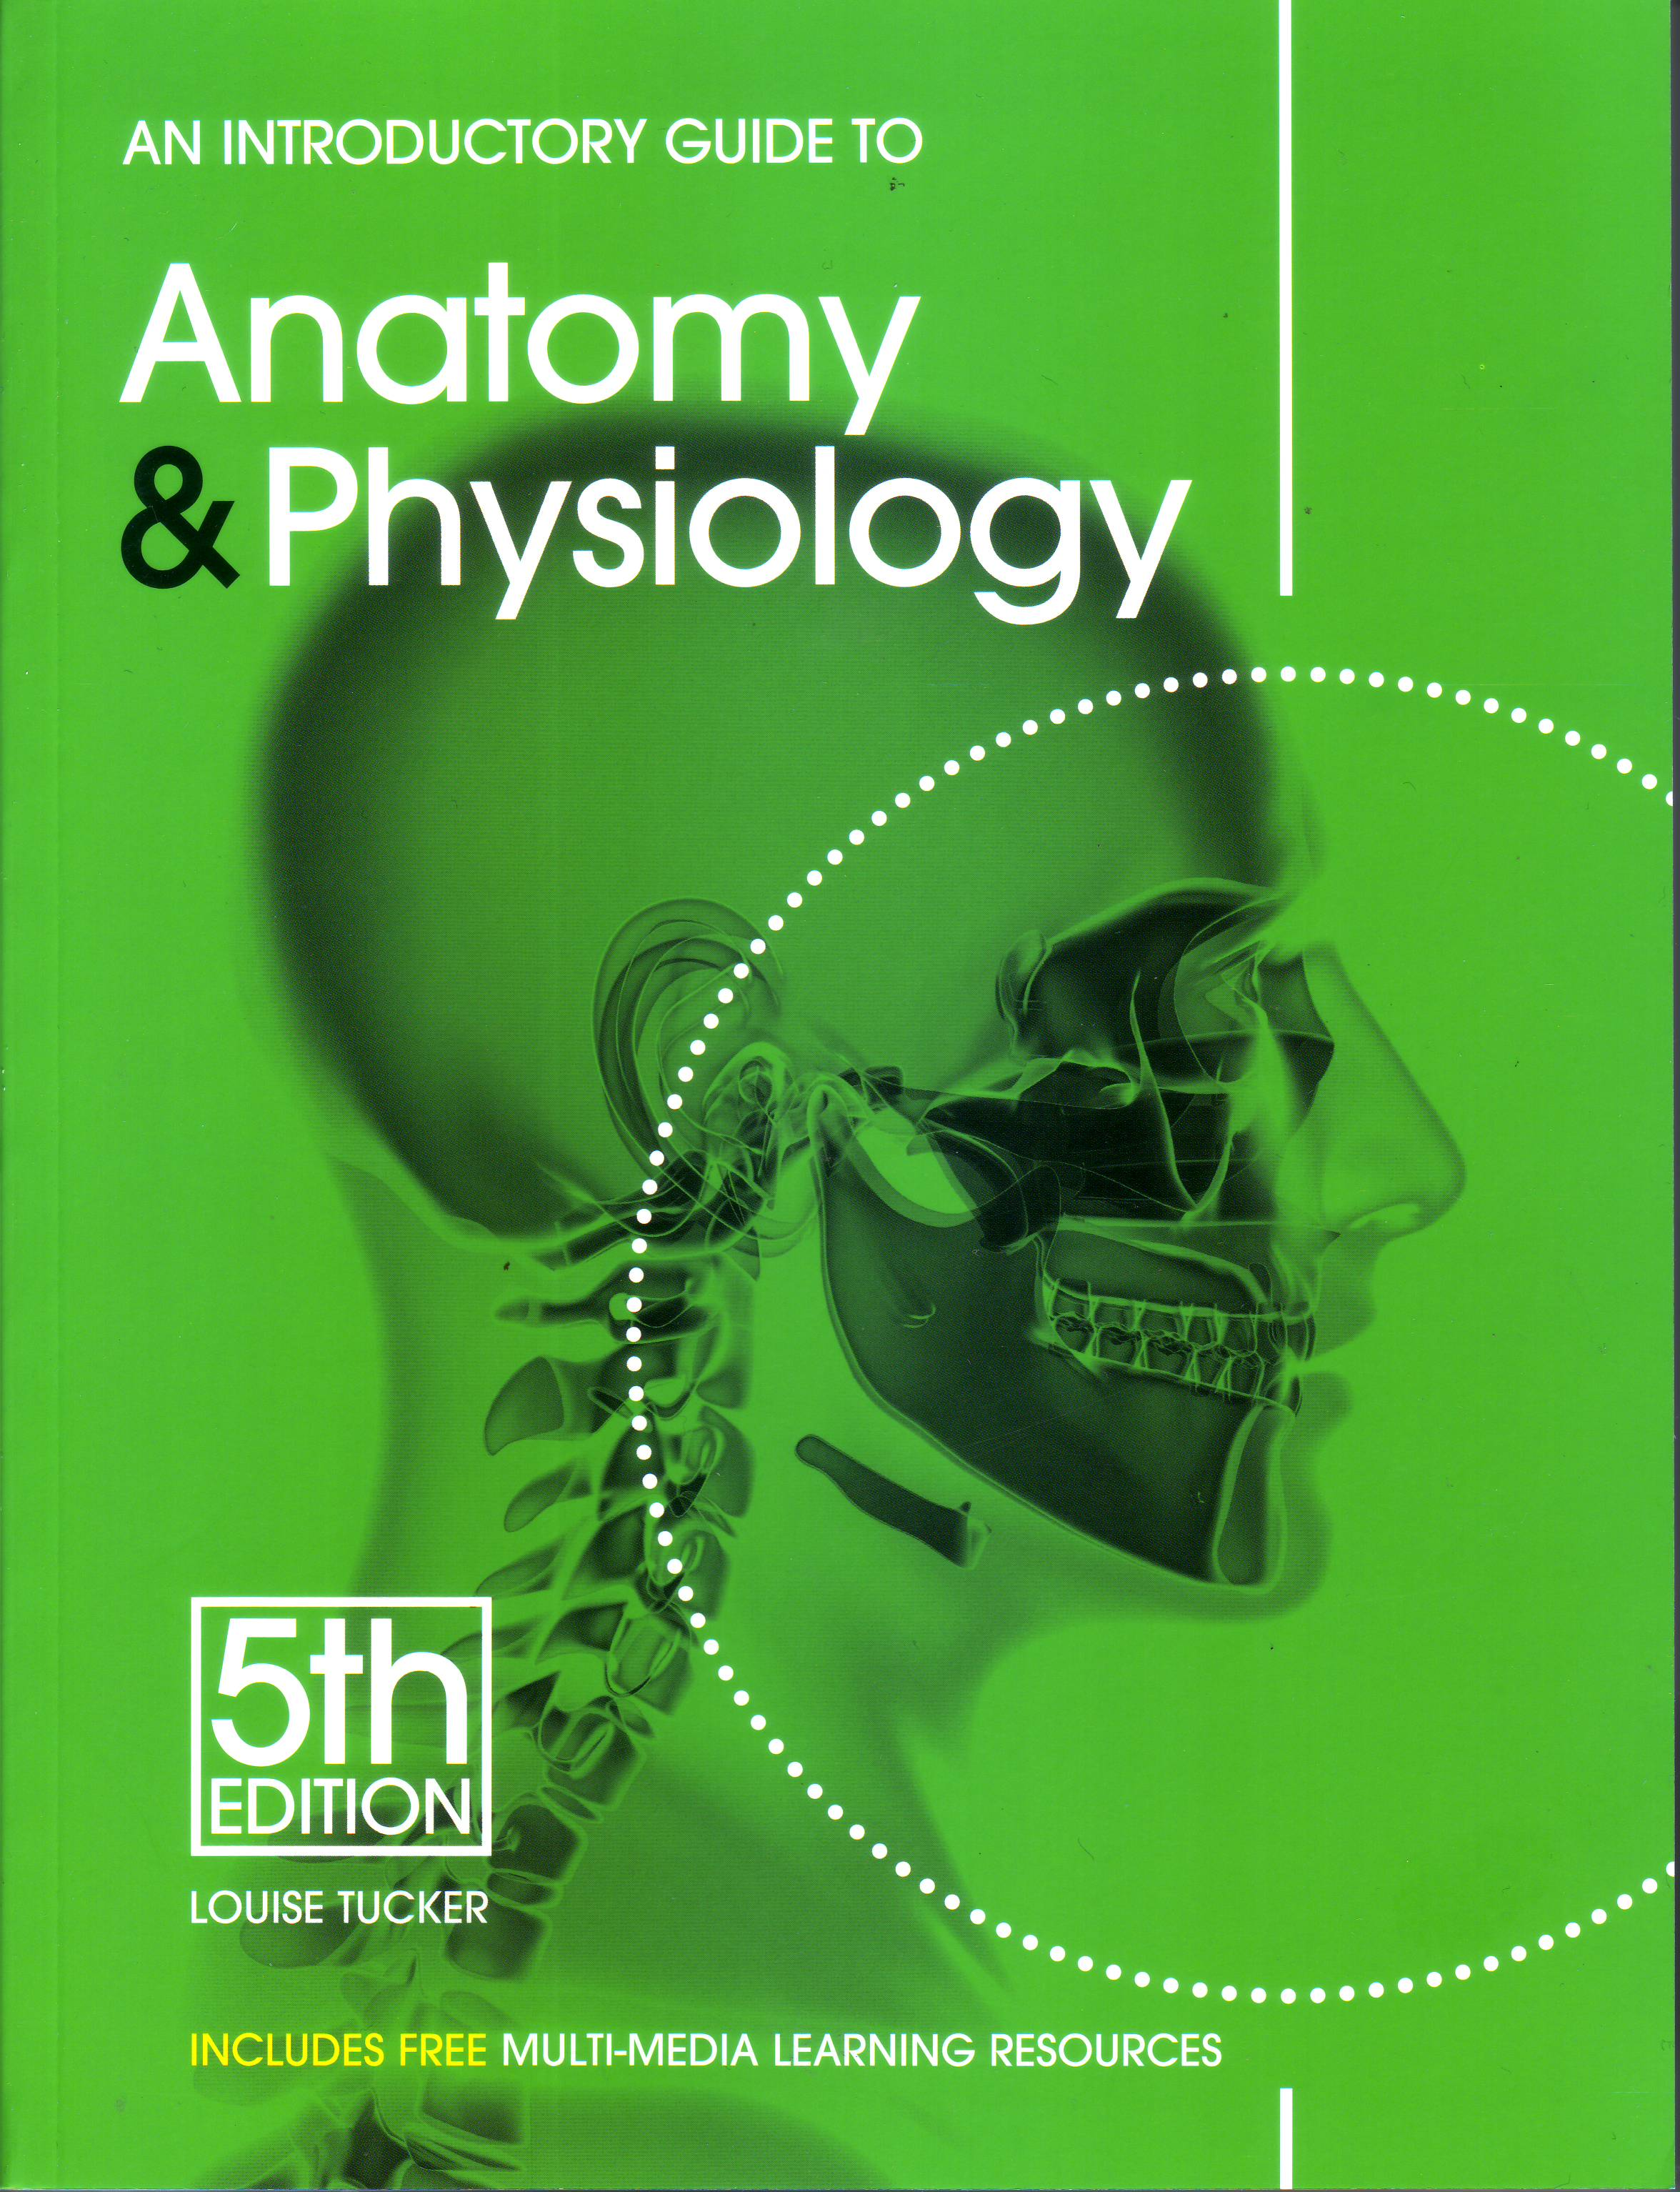 Introductory Guide to Anatomy & Physiology: 4th Ed - AcuMedic Shop